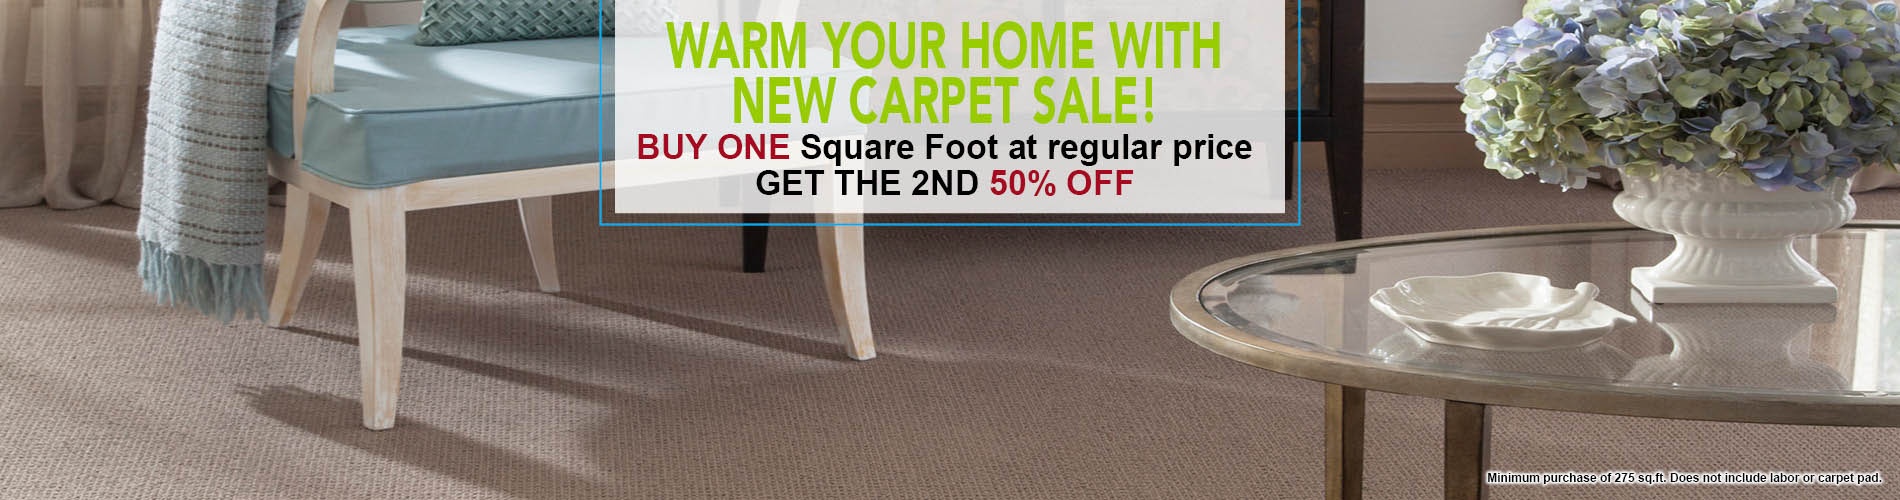 Warm Your Home with New Carpet Sale!  Buy one sq.ft. at regular price and get the 2nd HALF OFF!